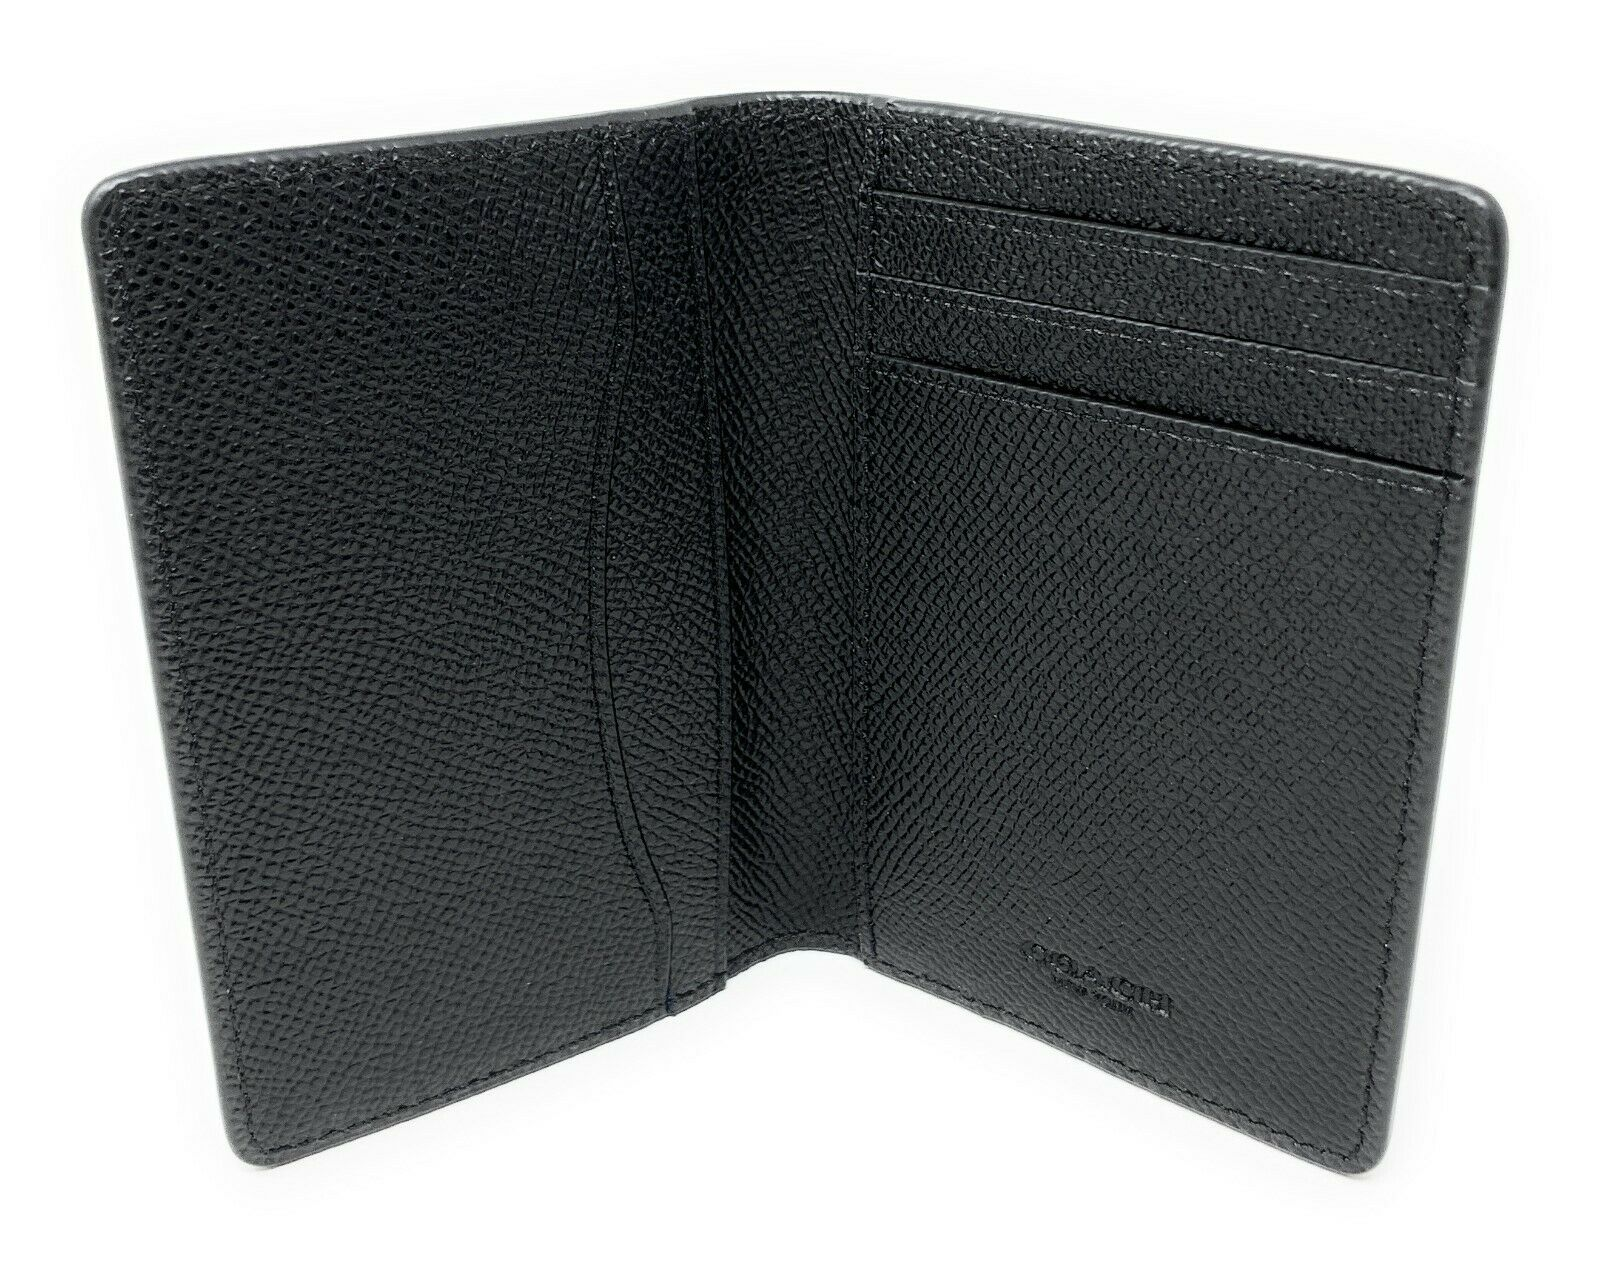 Coach Men's Card Case Wallet Black Crossgrain Leather F66574